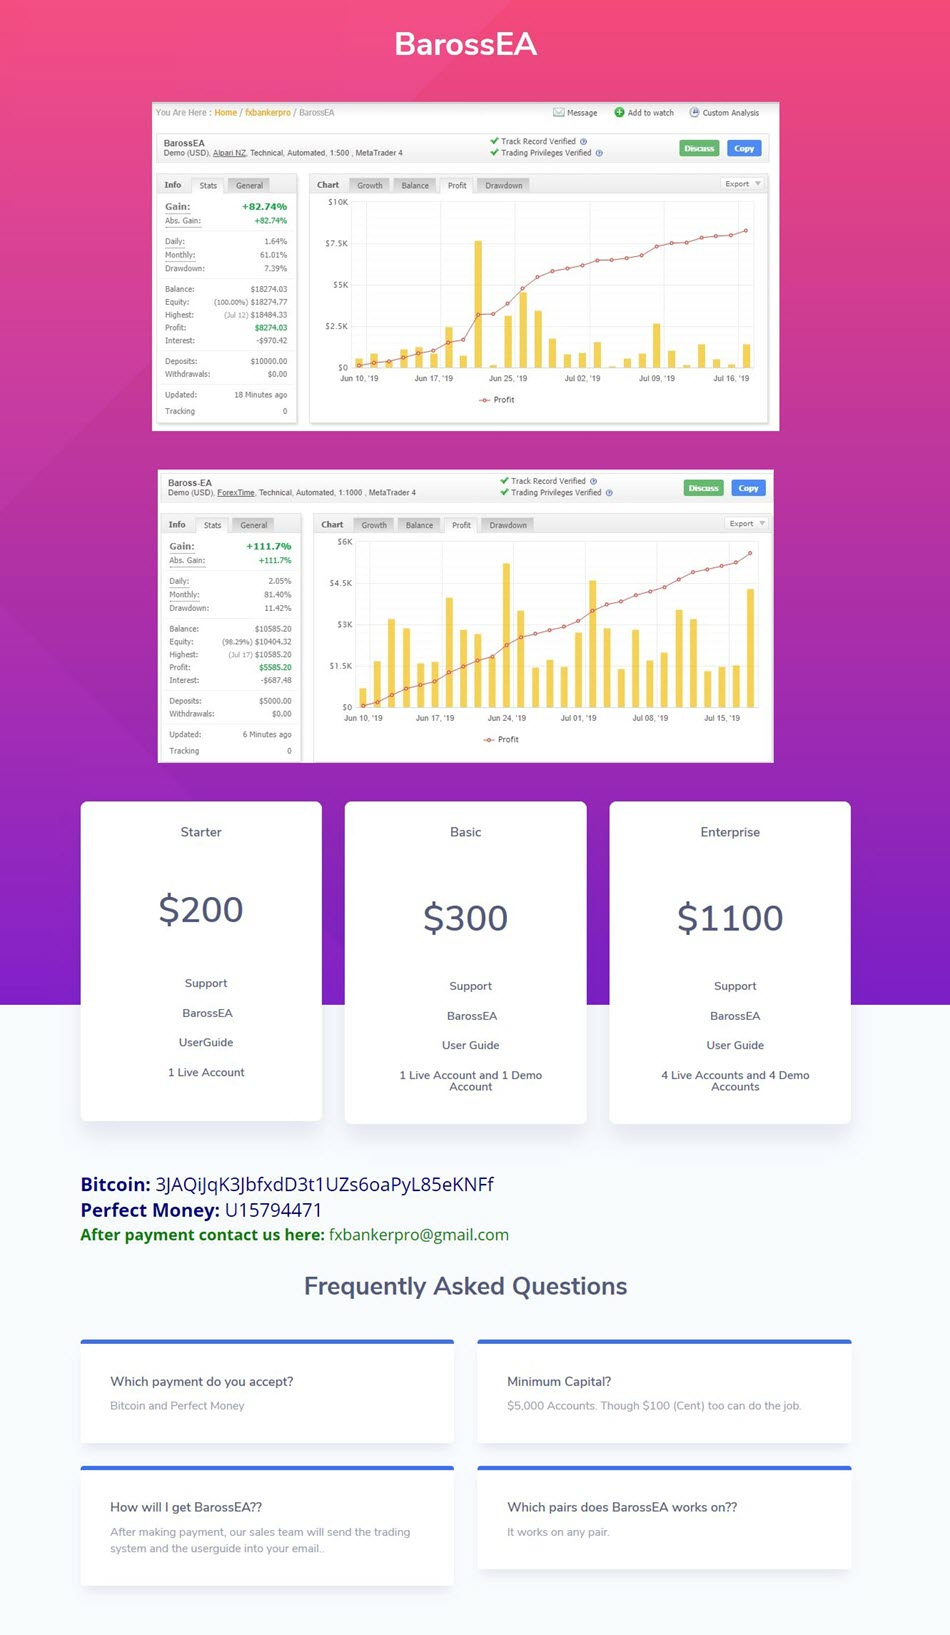 www.fxbankerpro.com/barossea Original Price $1100 Expert: BarossEA.ex4 (Unlocked) Document: readme.txt  Monitoring: https://www.myfxbook.com/members/fxbankerpro/baros... https://www.myfxbook.com/members/fxbankerpro/baros...